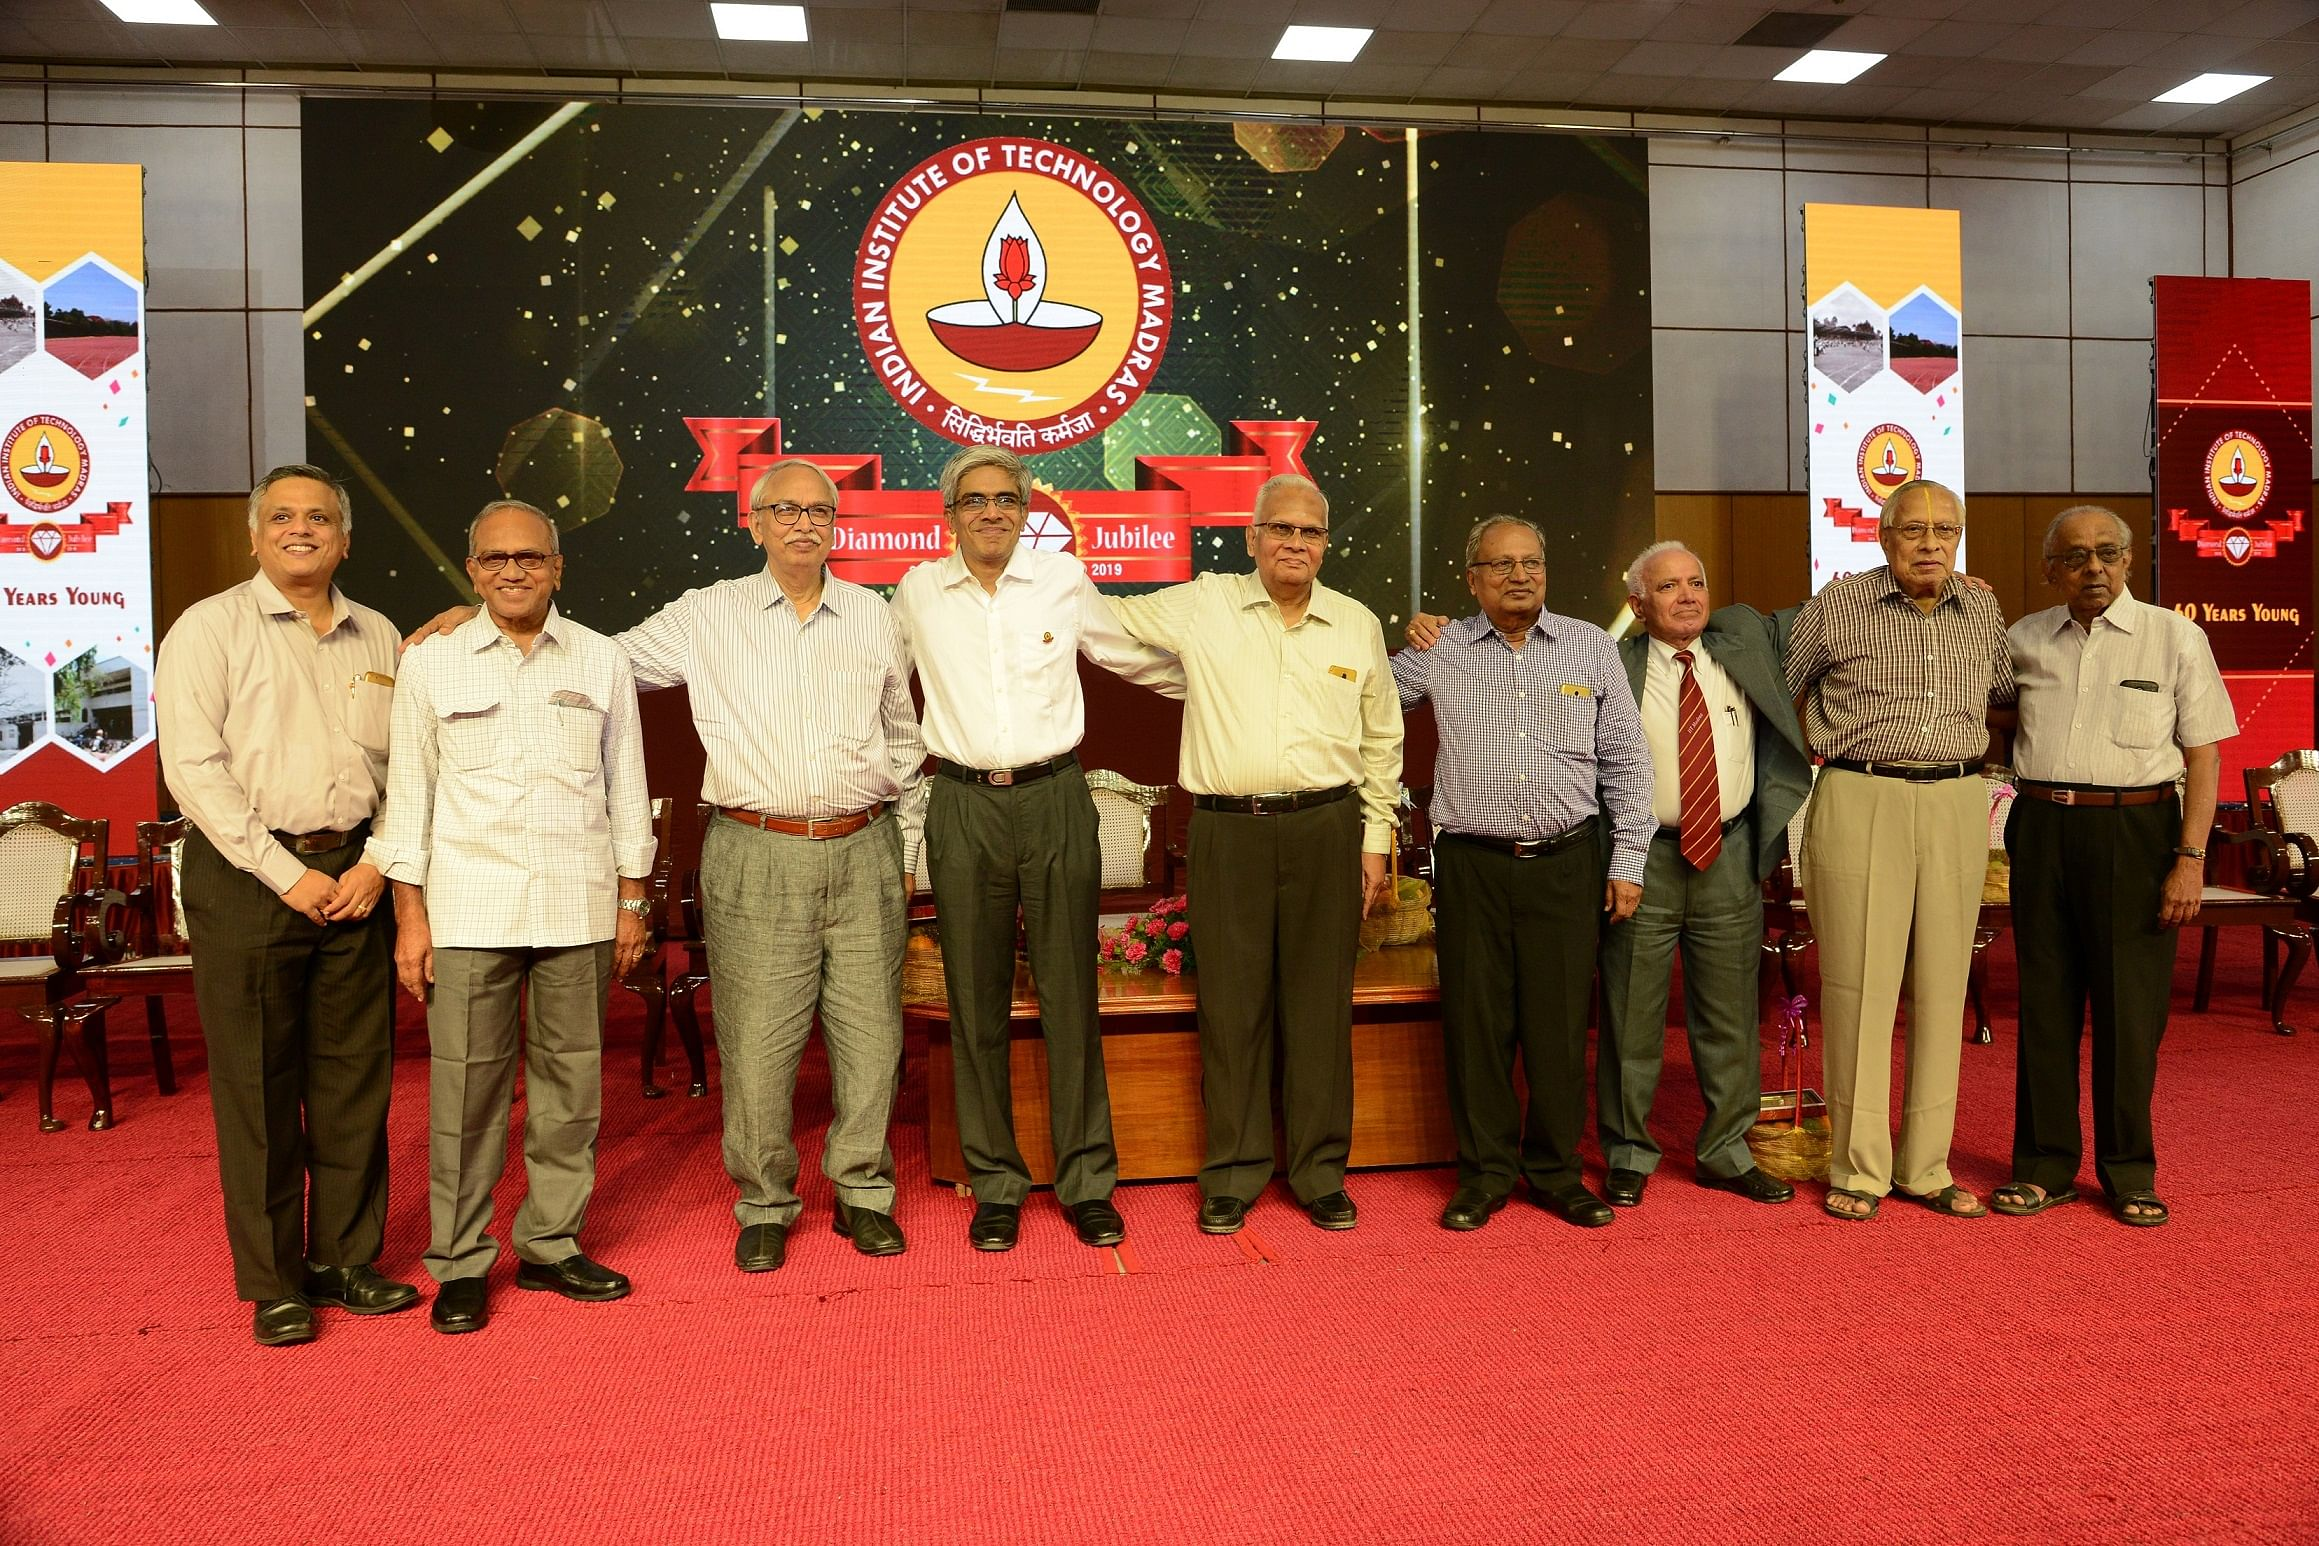 Prof. Bhaskar Ramamurthi, Director, IIT-M with the first batch that graduated from the Institute in 1964 during Diamond Jubilee celebrations. (Source: IIT Madras)